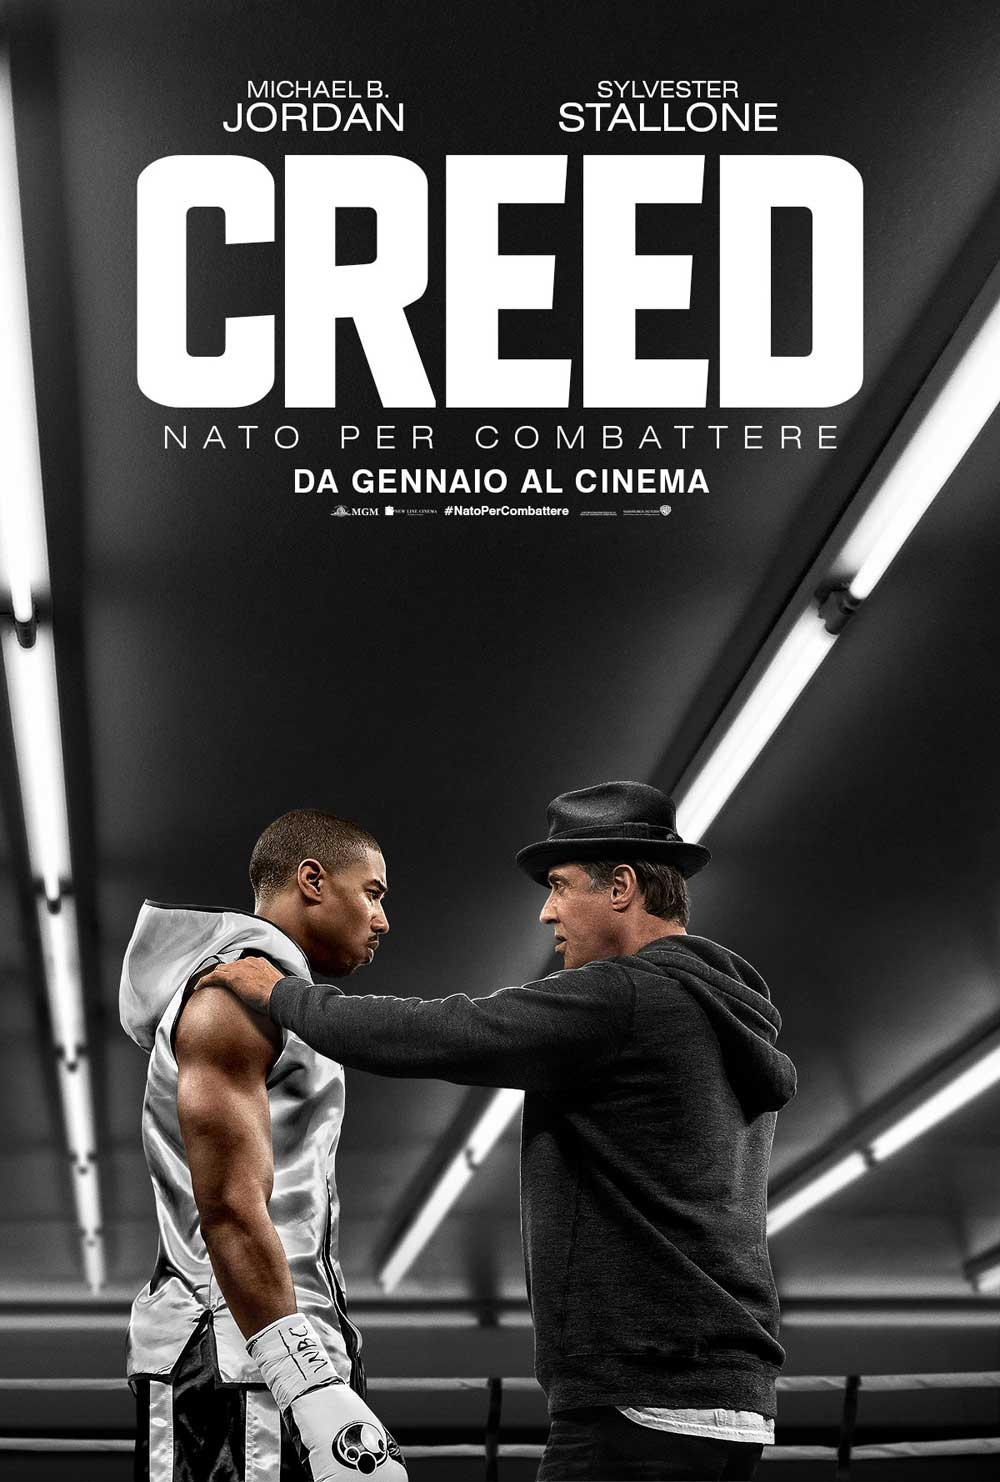 CREED - NATO PER COMBATTERE (DVD)